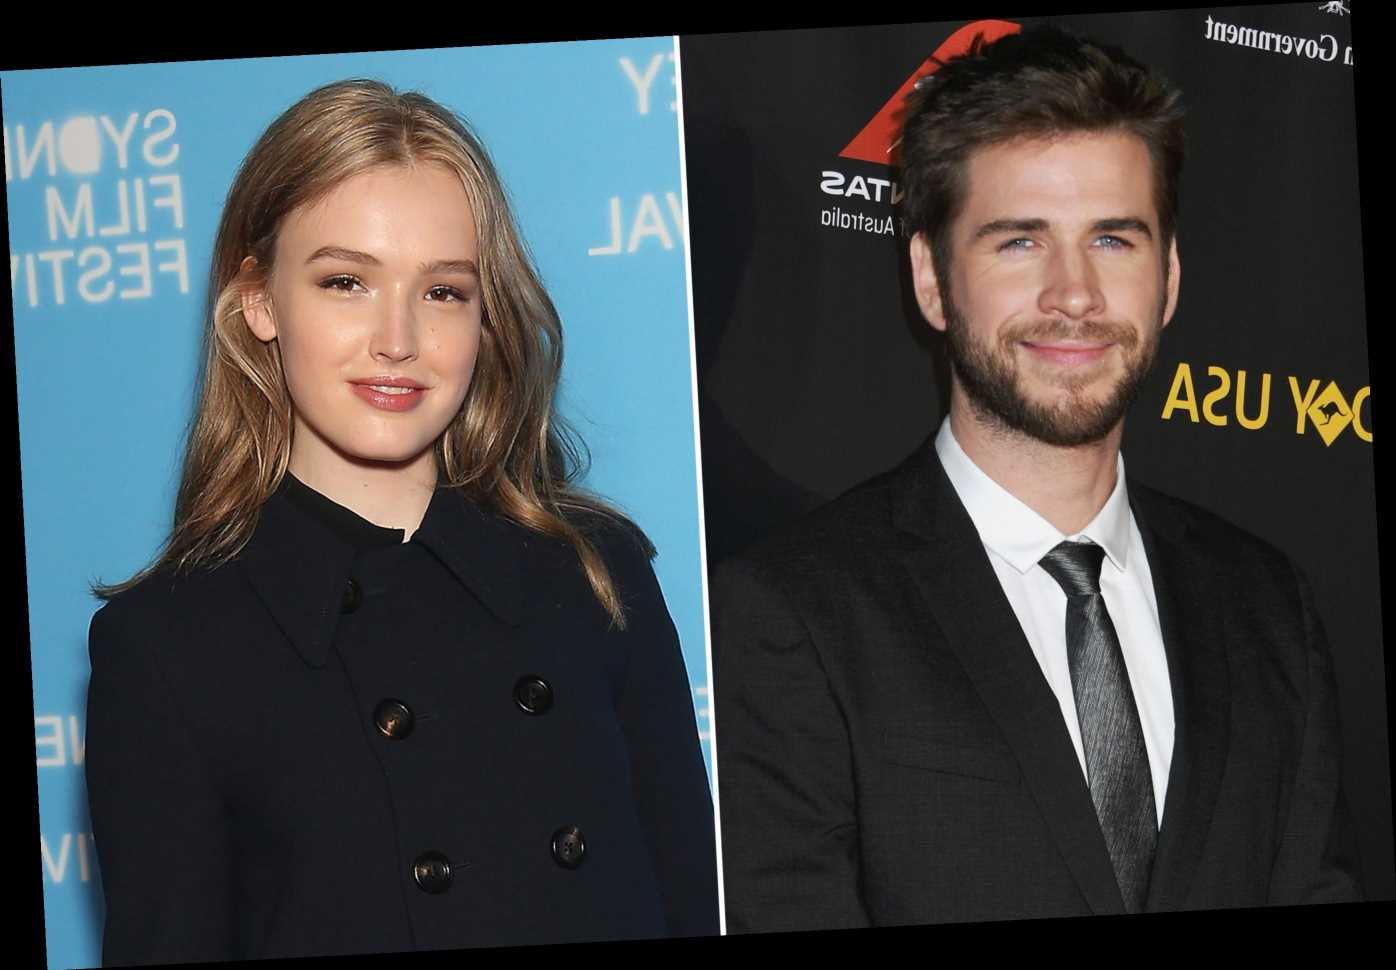 Liam Hemsworth 'Taking It Slow' with New Love Interest Maddison Brown After Split from Miley Cyrus: Source